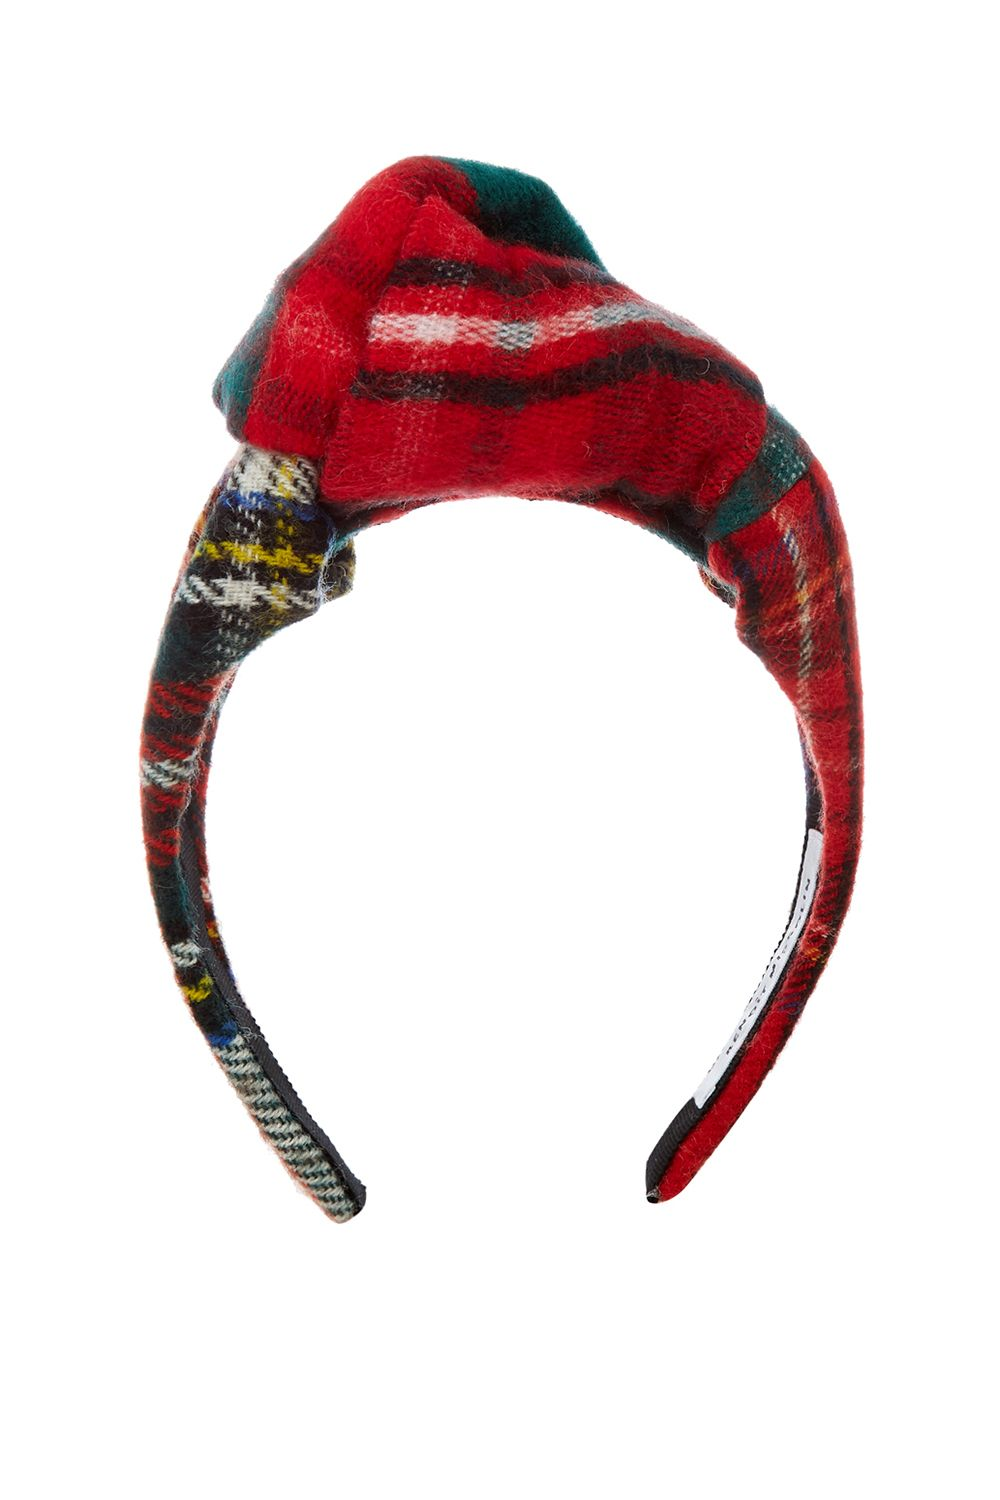 "<p>Prada studies abroad in the U.K. </p><p>$84, <a href=""http://www.matchesfashion.com/products/Beno%C3%AEt-Missolin-Diana-tartan-wool-headband--1068329"" target=""_blank"" data-tracking-id=""recirc-text-link"">matchesfashion.com</a>.</p>"